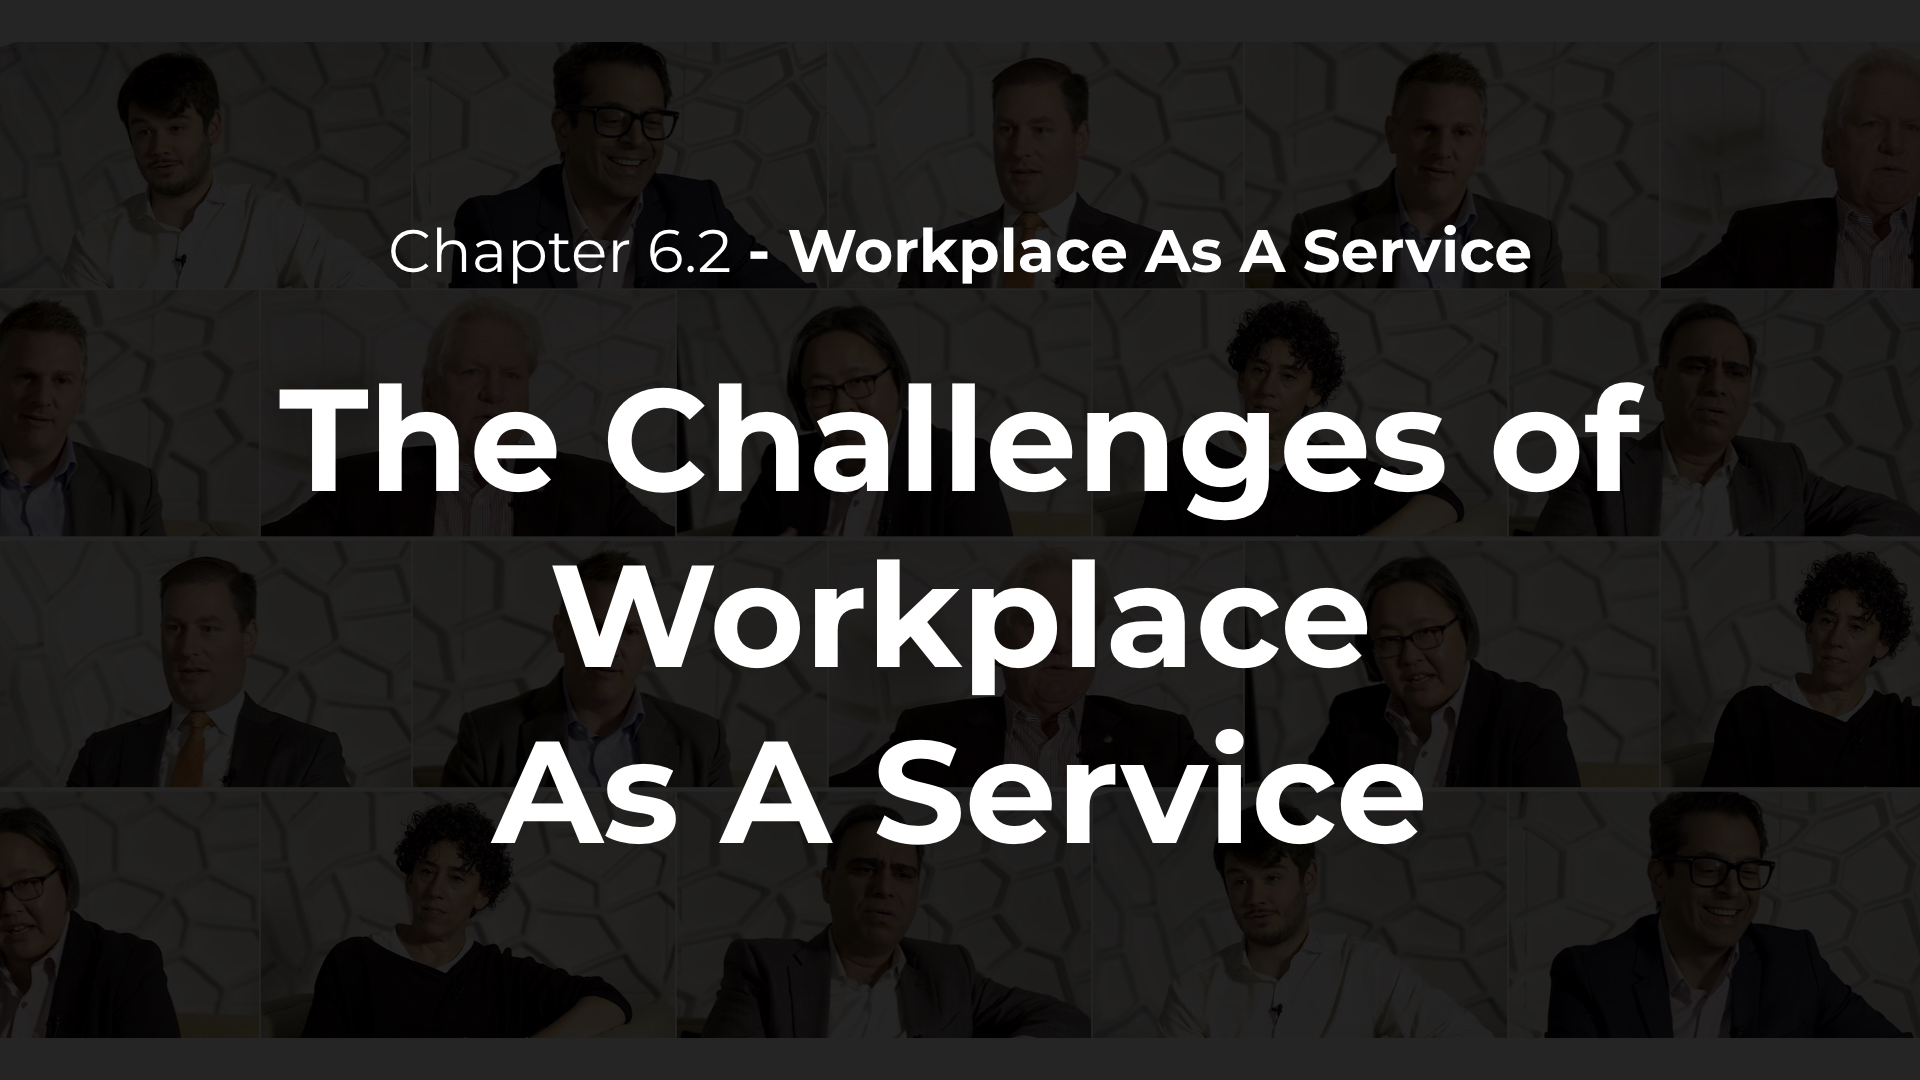 6.2 - The Challenges of Workplace As A Service